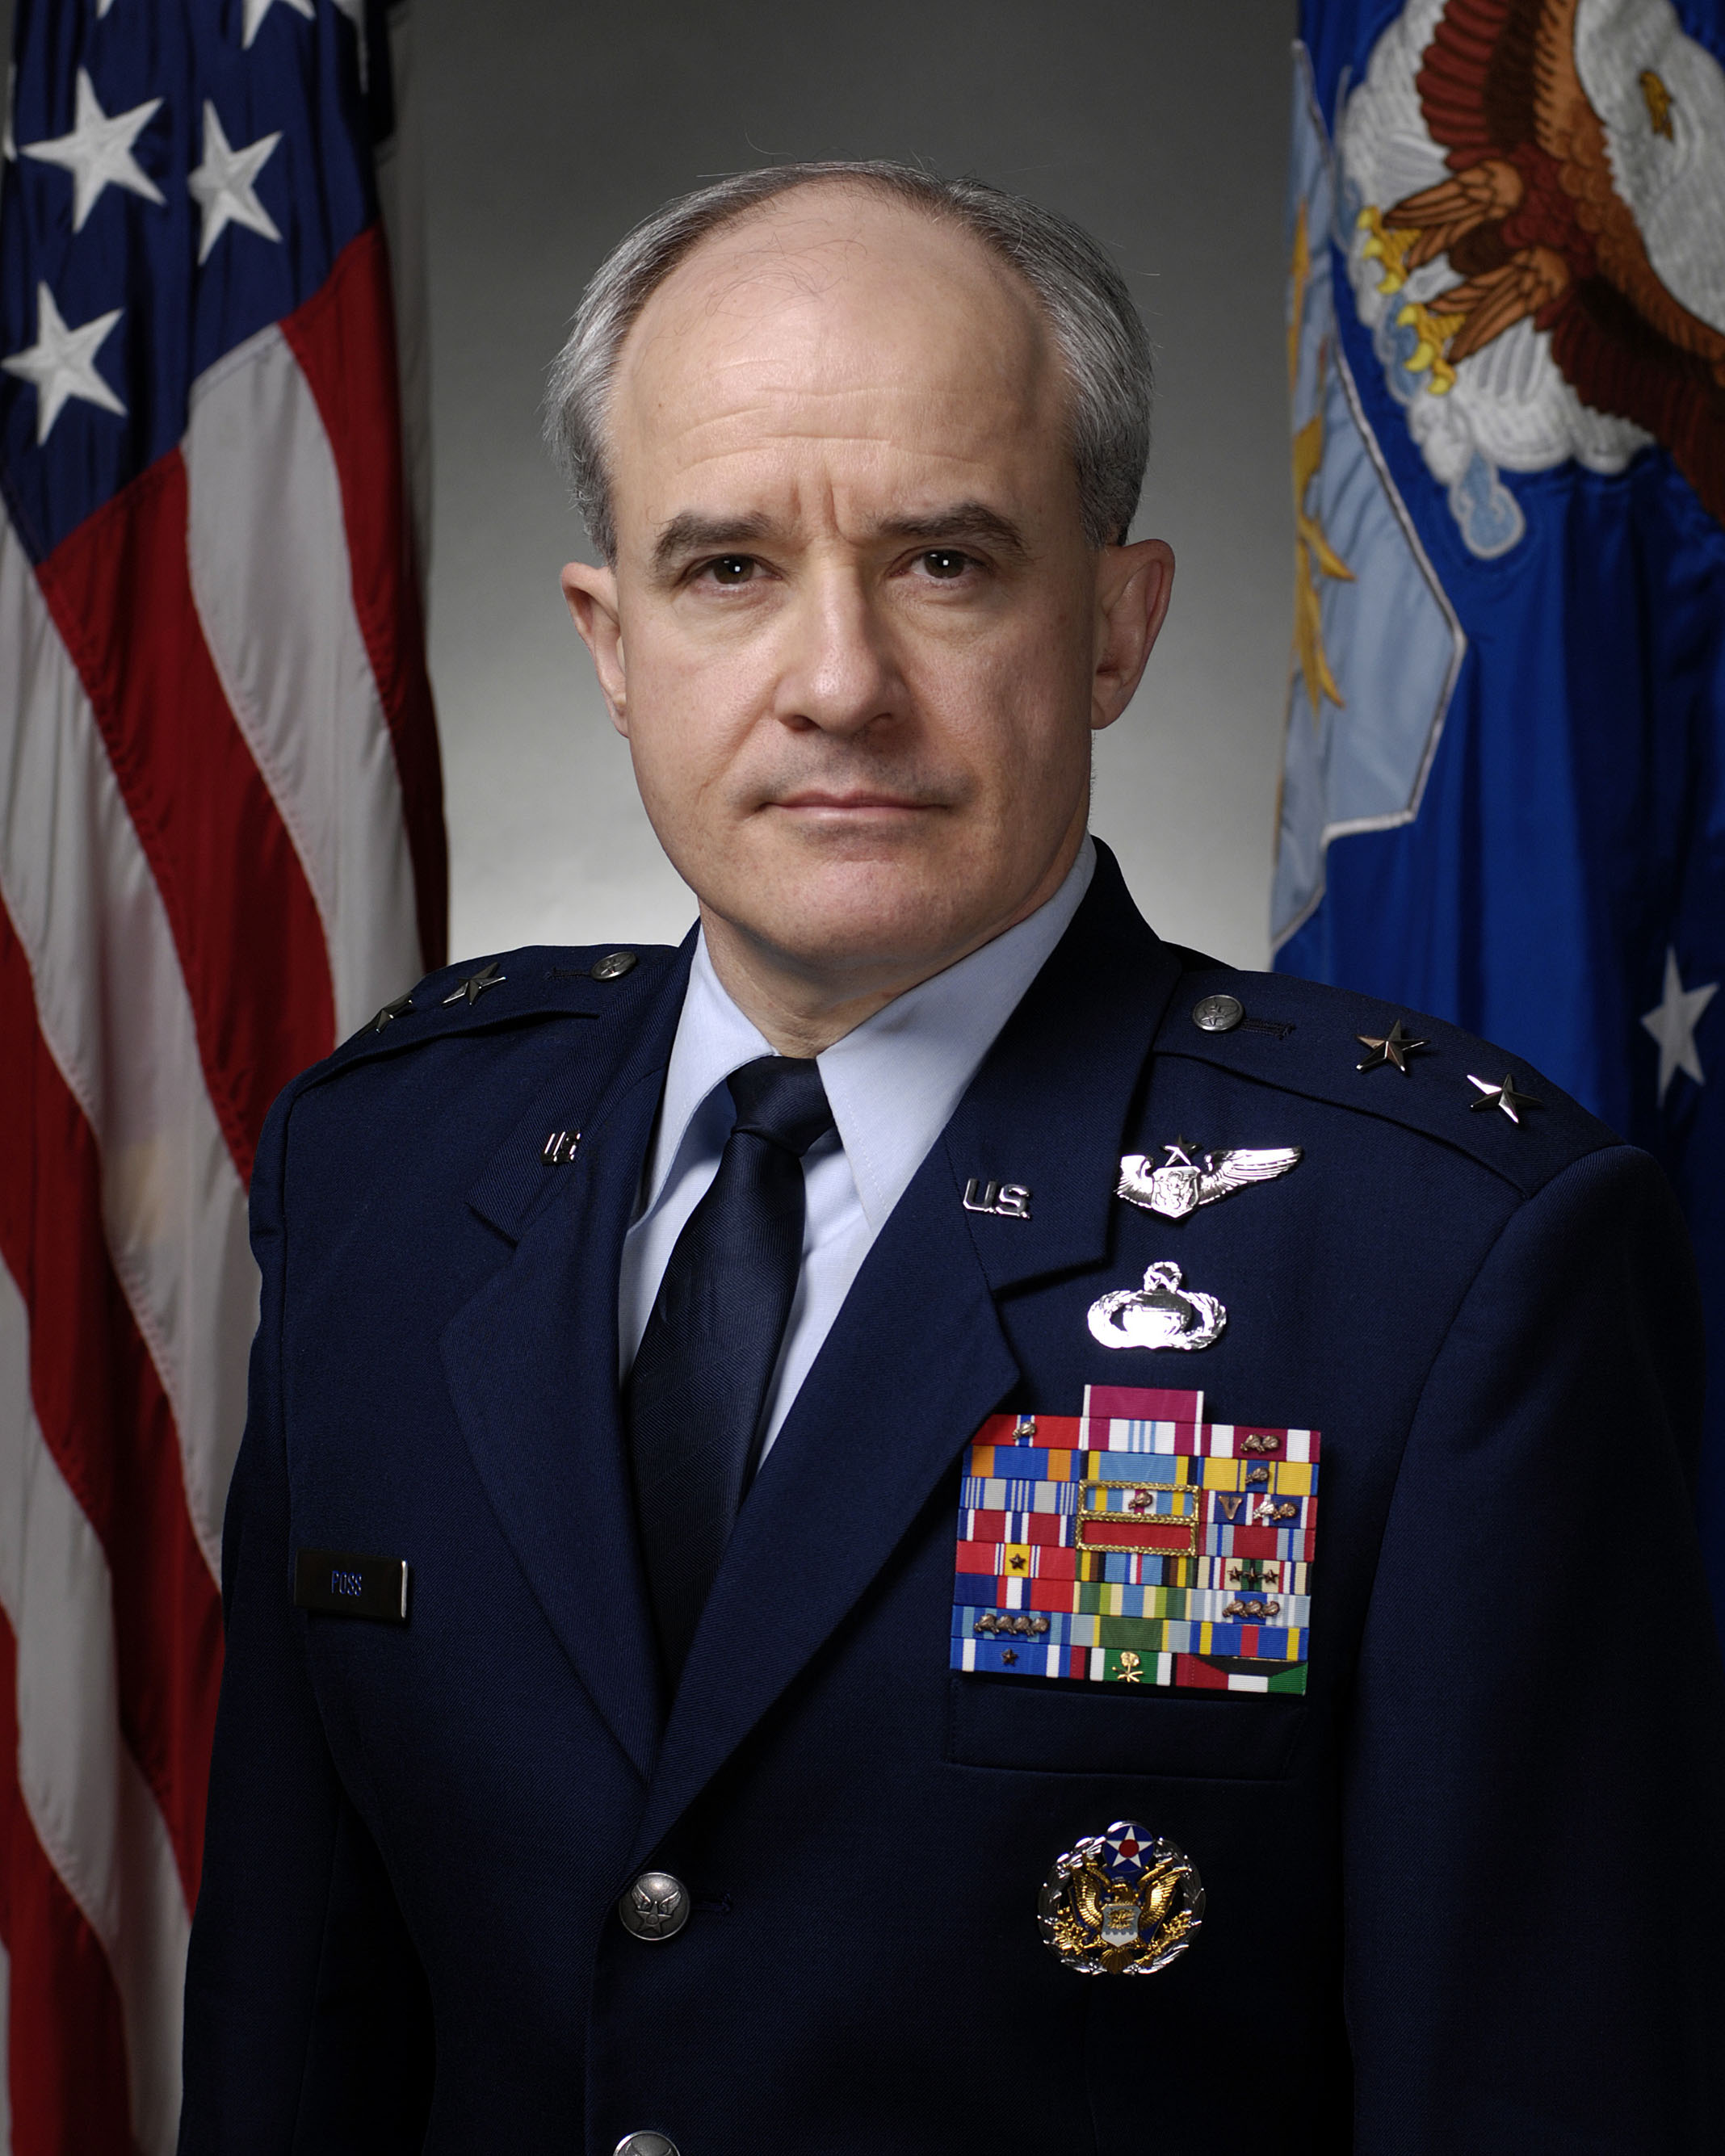 Major General James O Poss Gt U S Air Force Gt Biography